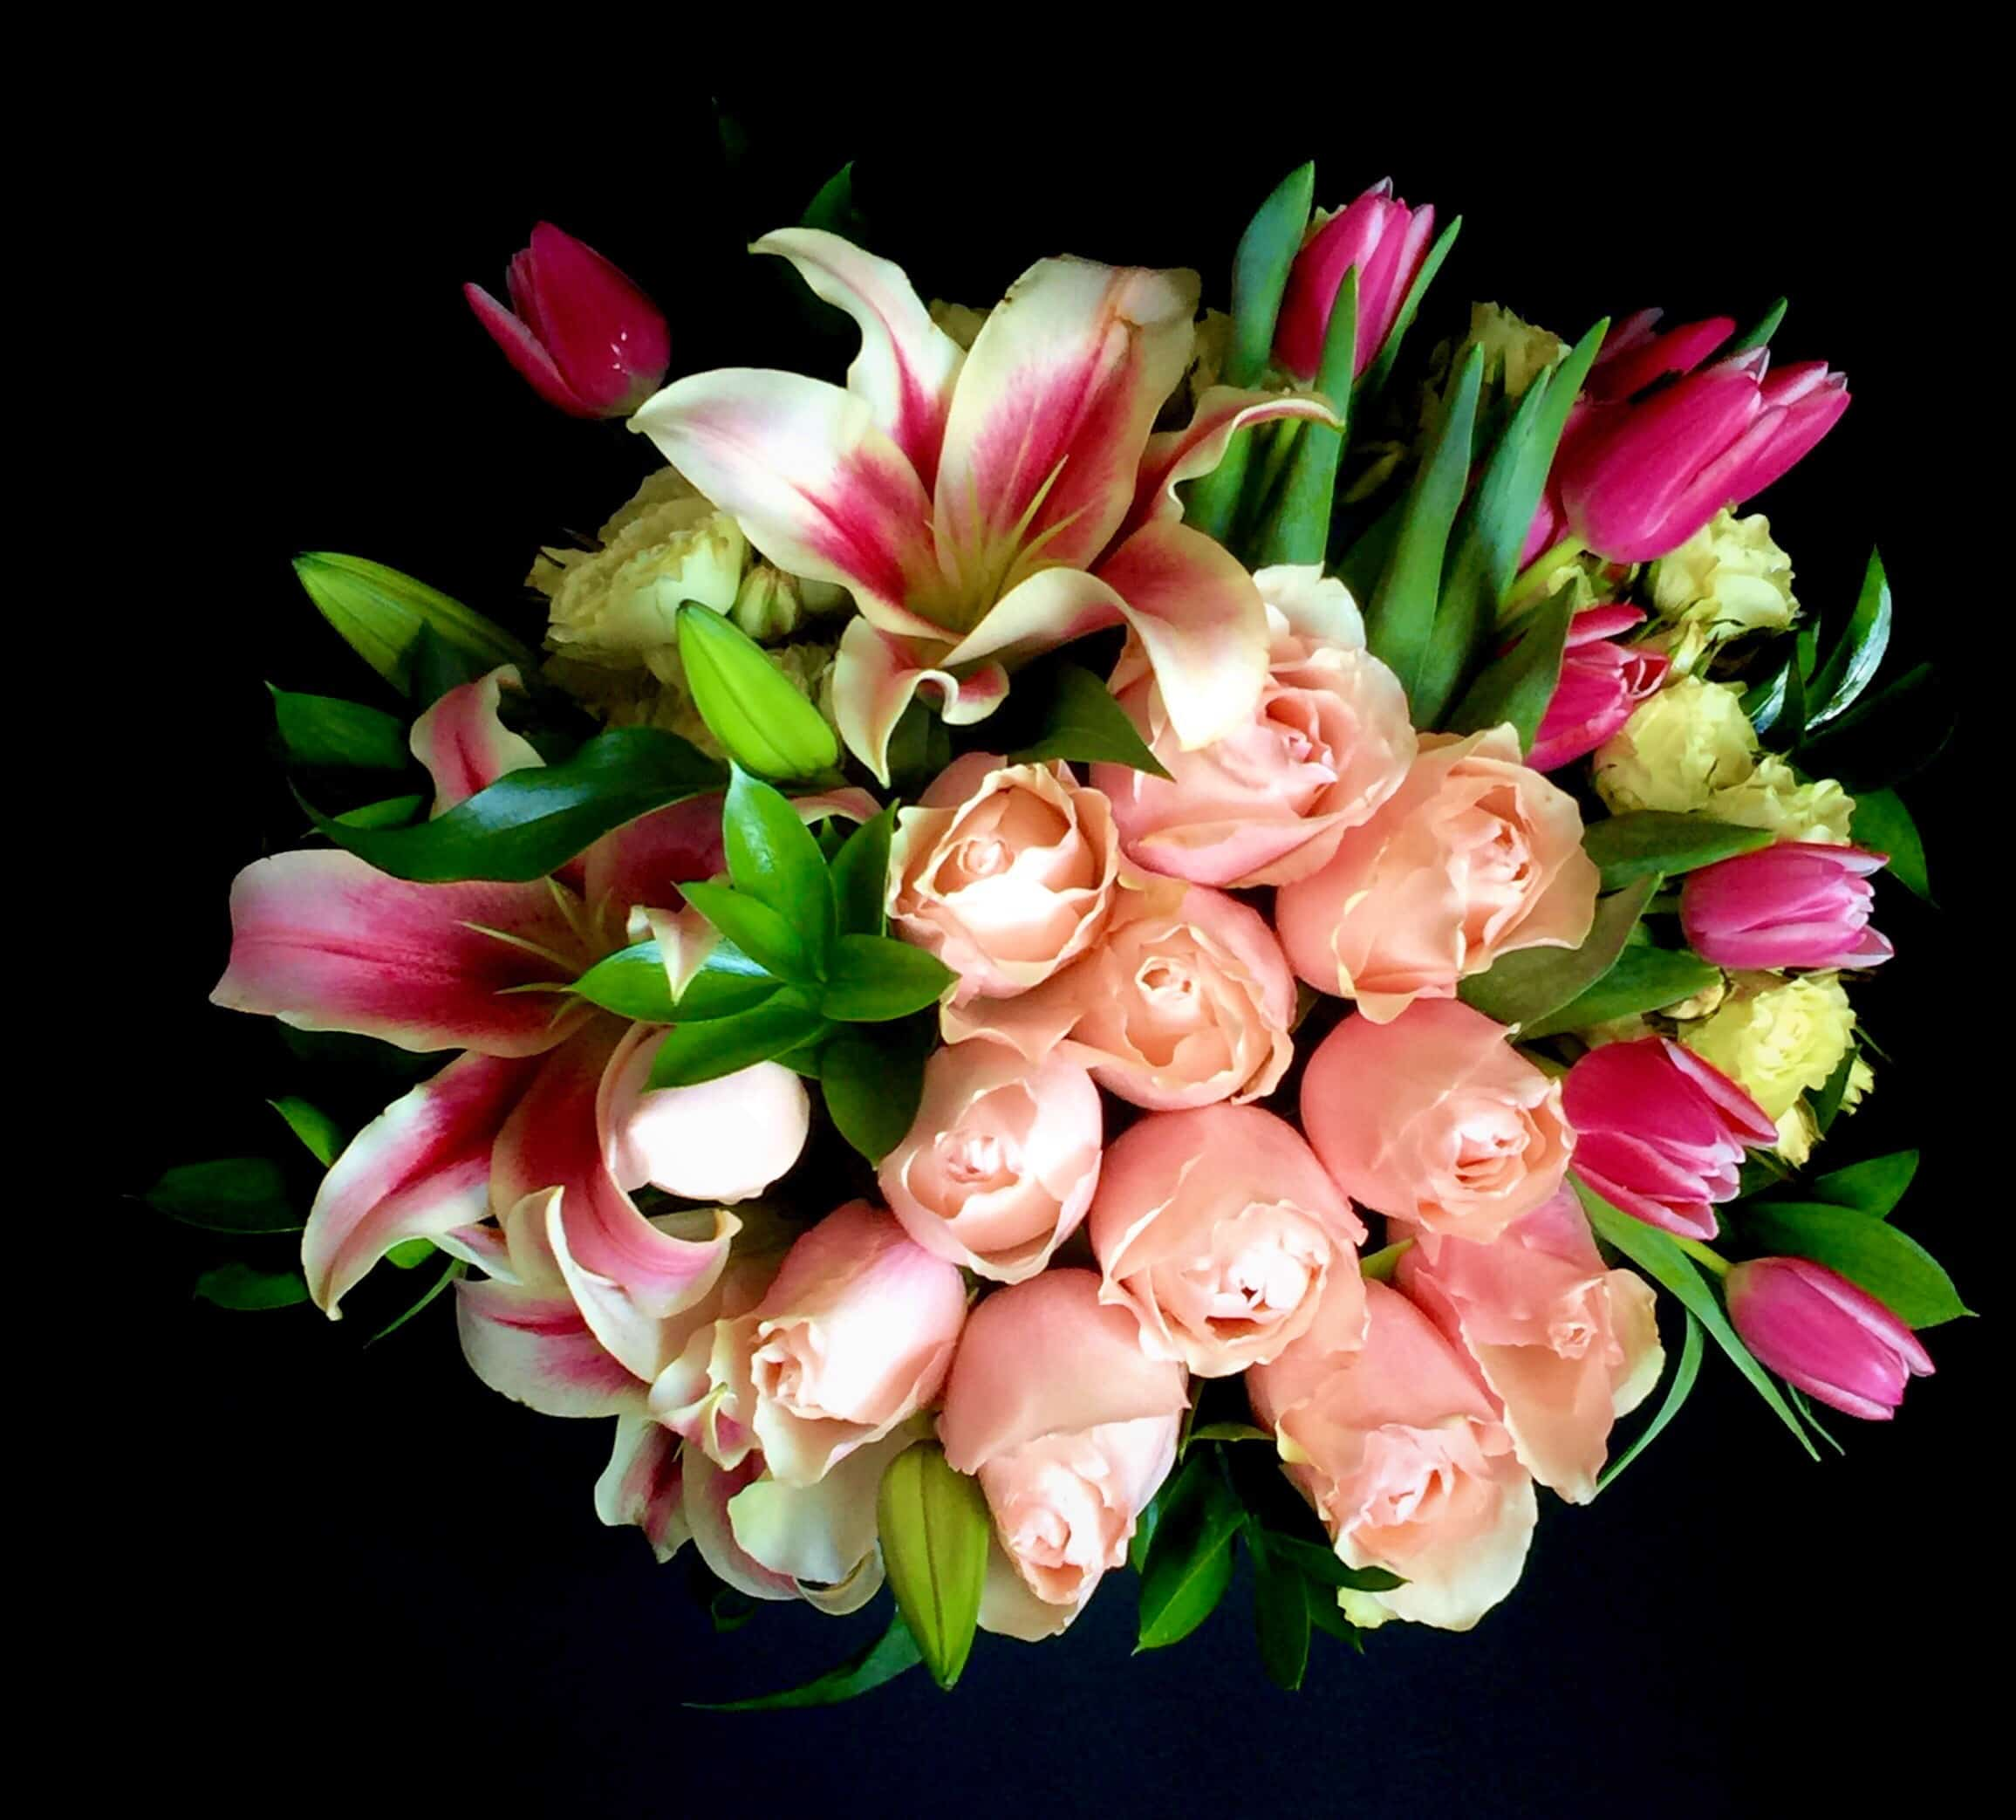 Handpicked fresh seasonal blooms in pink and white shades